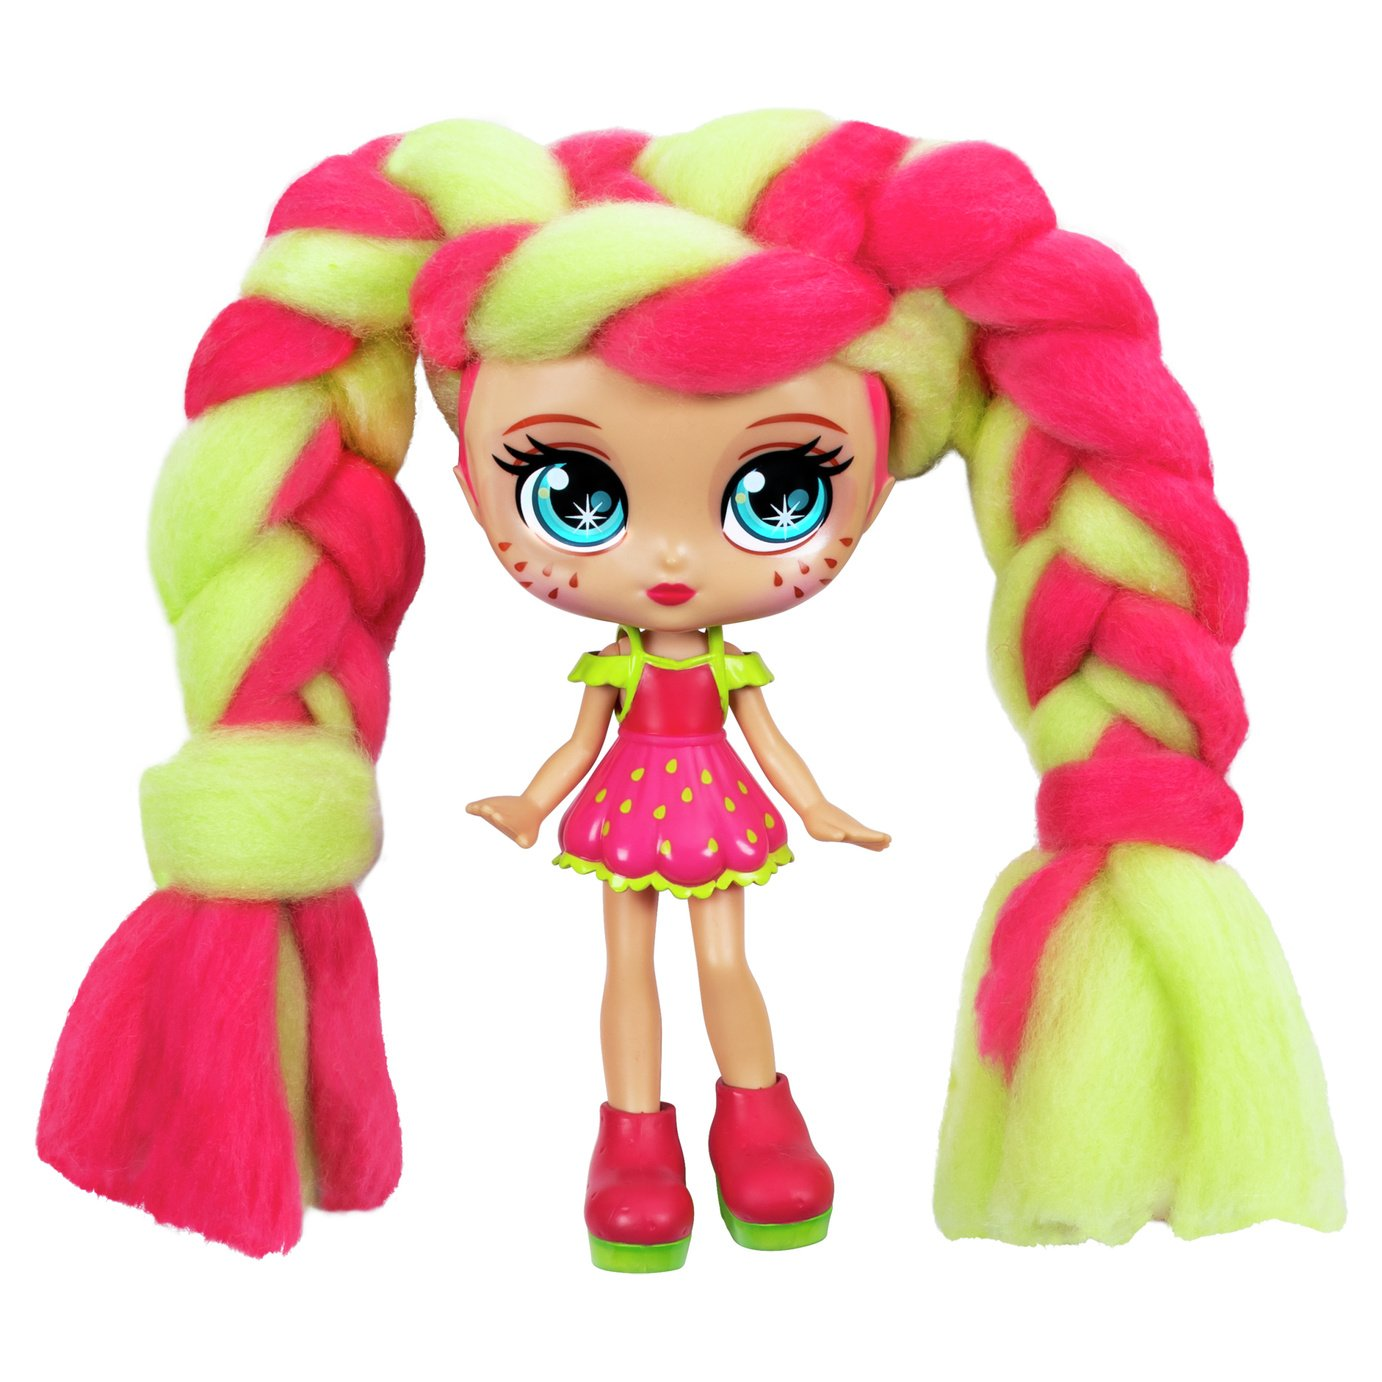 Candylocks Deluxe Scented Doll Assortment